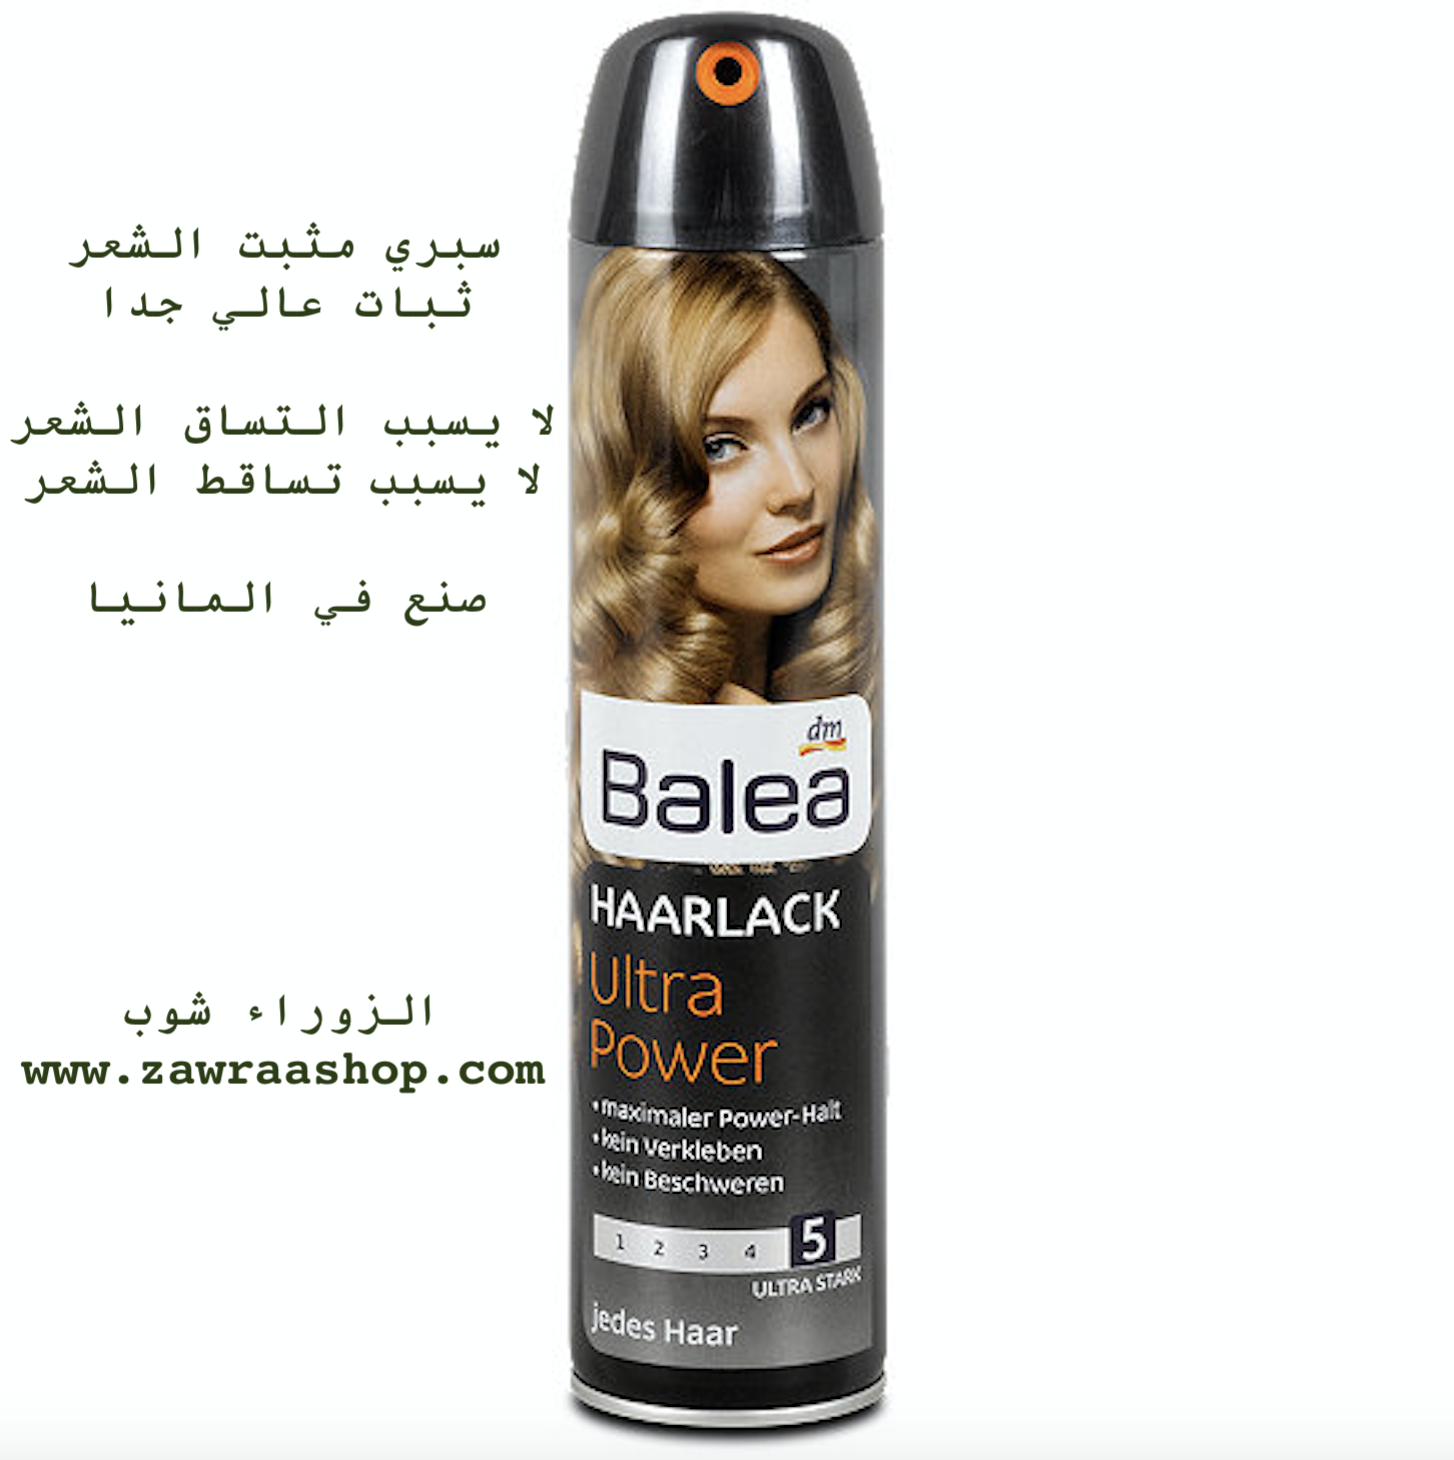 B401 HAARLACK ultra power 300ml سبري شعر باليه 00439